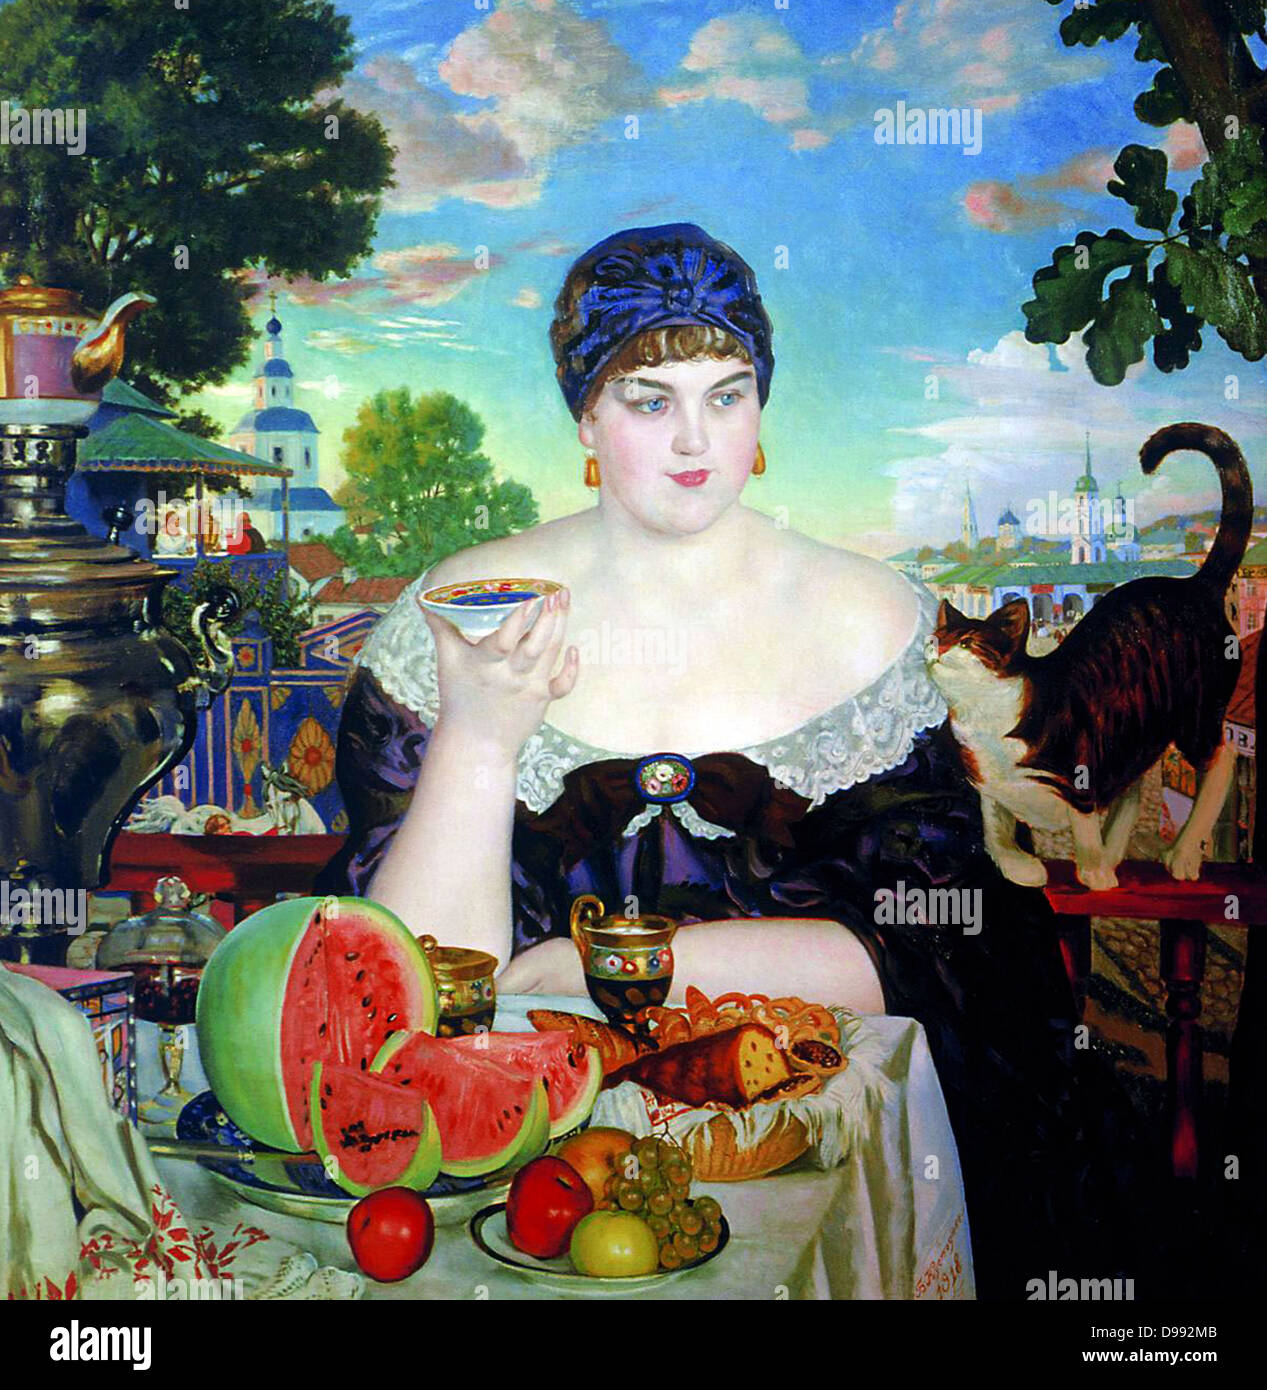 The Merchant's Wife', 1918. Oil on canvas. Boris Kustodiev (1878-1927) Russian painter and stage designer. - Stock Image